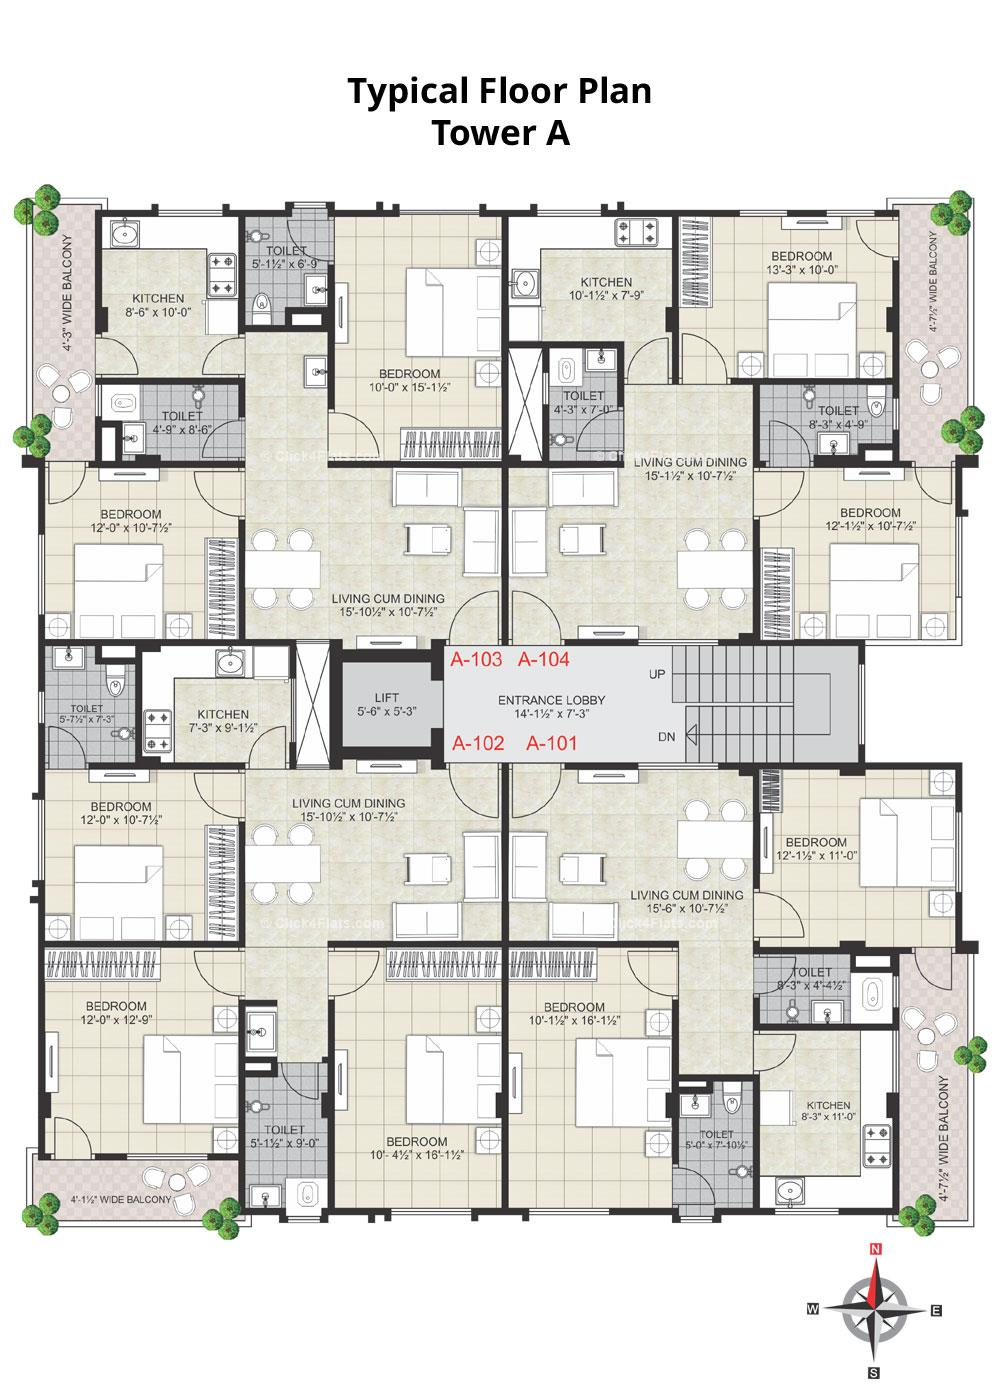 Virat Prime Typical Floor Plan (Tower A)